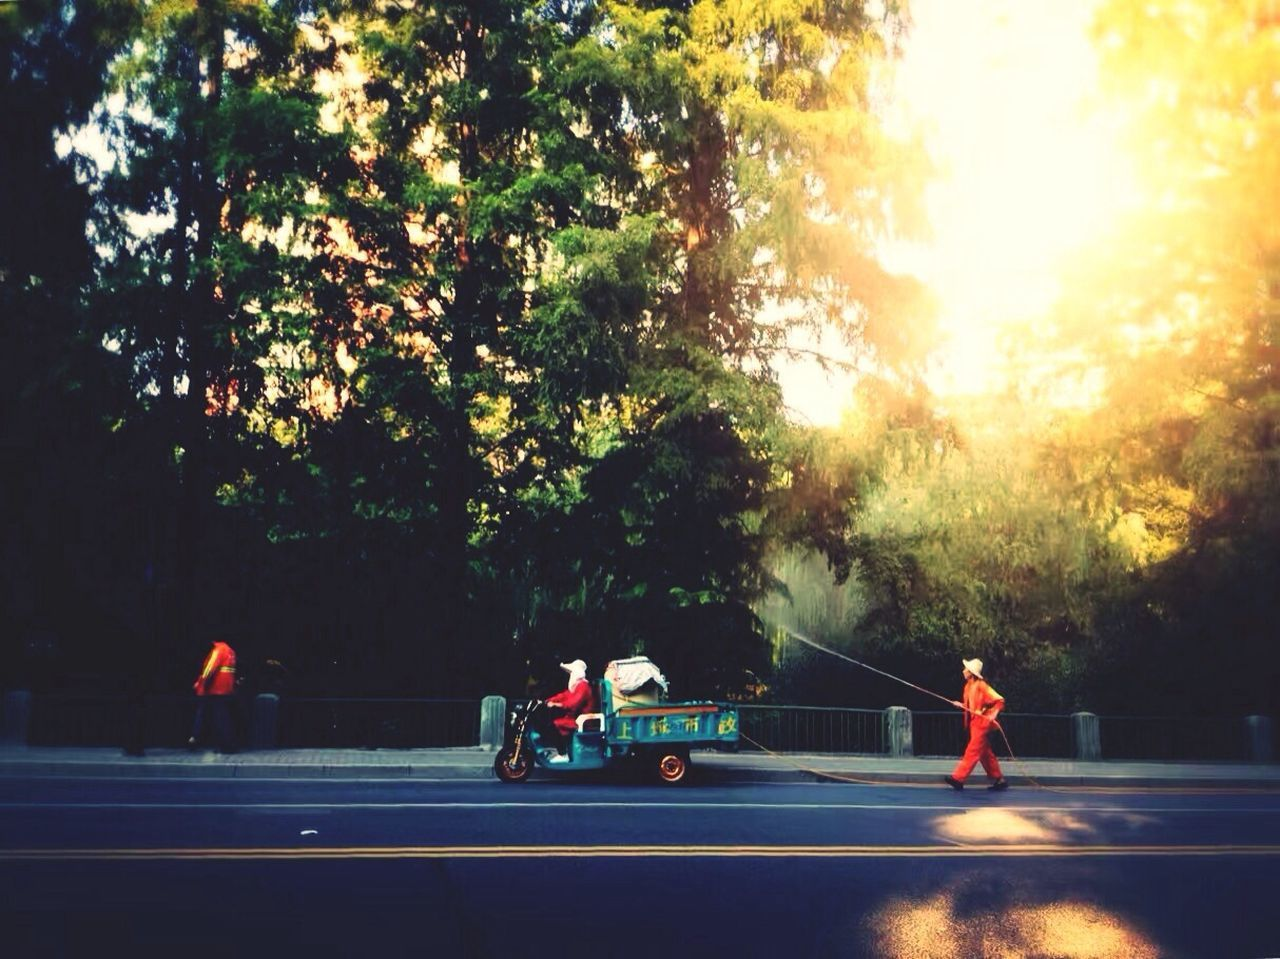 tree, real people, transportation, road, men, growth, sunlight, outdoors, day, land vehicle, nature, firefighter, water, fire engine, sky, people